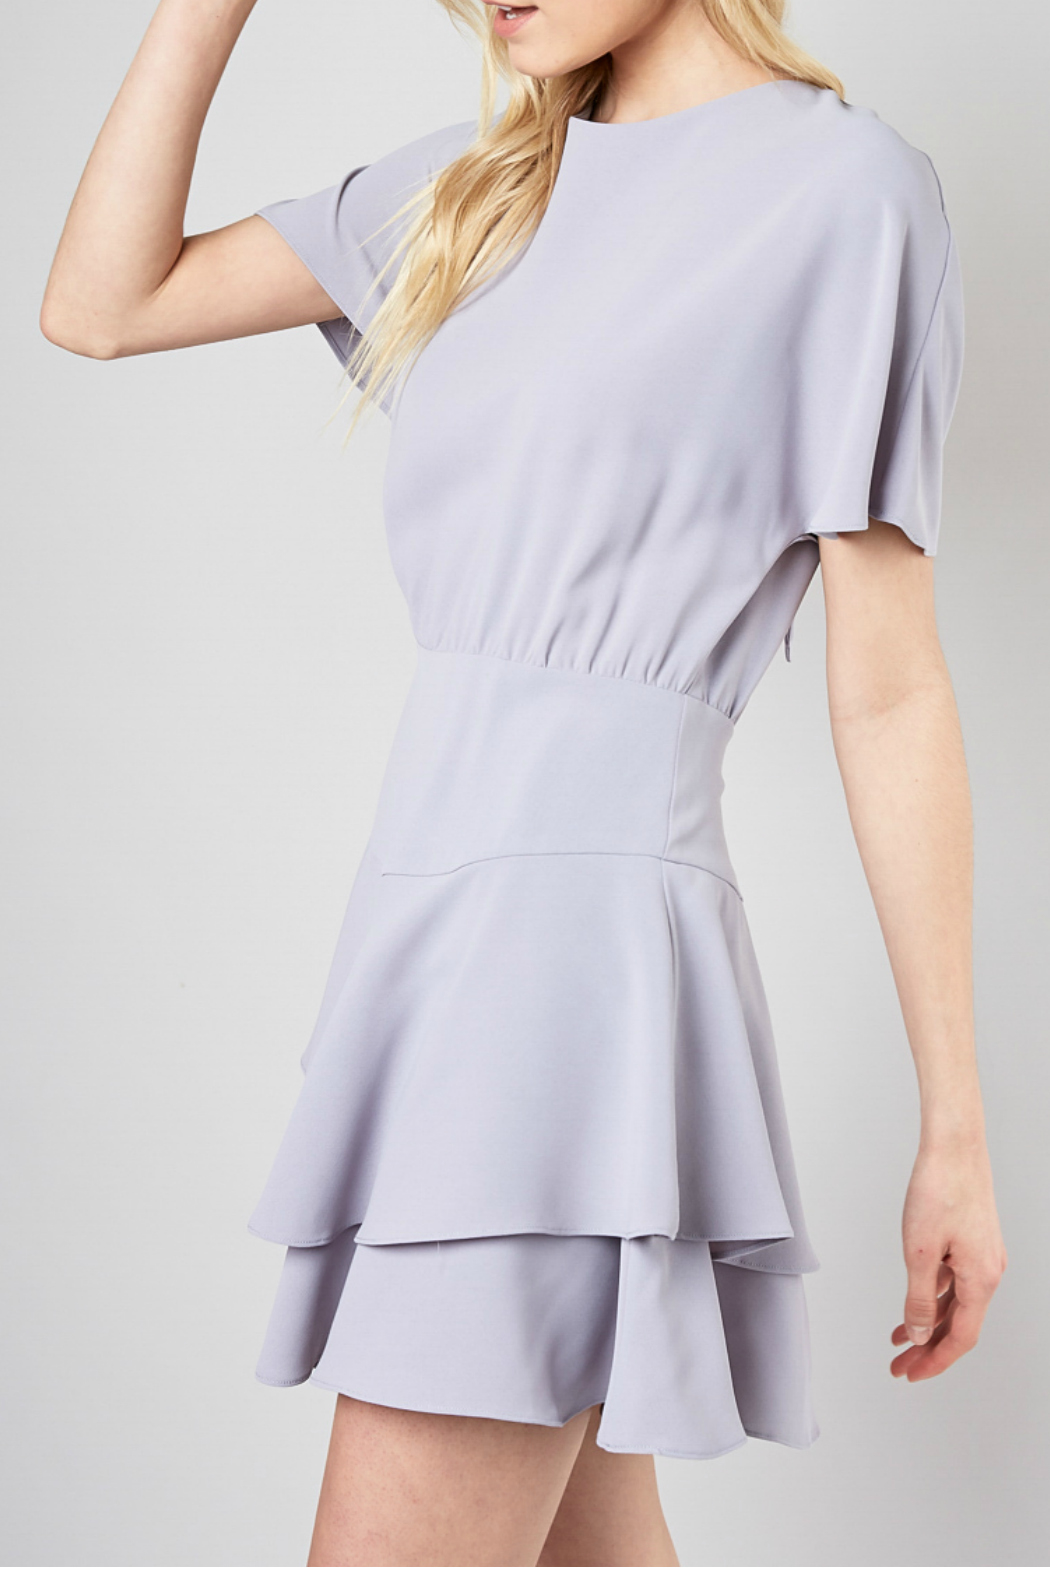 Do & Be Ribbon tie fit and flare dress - Side Cropped Image